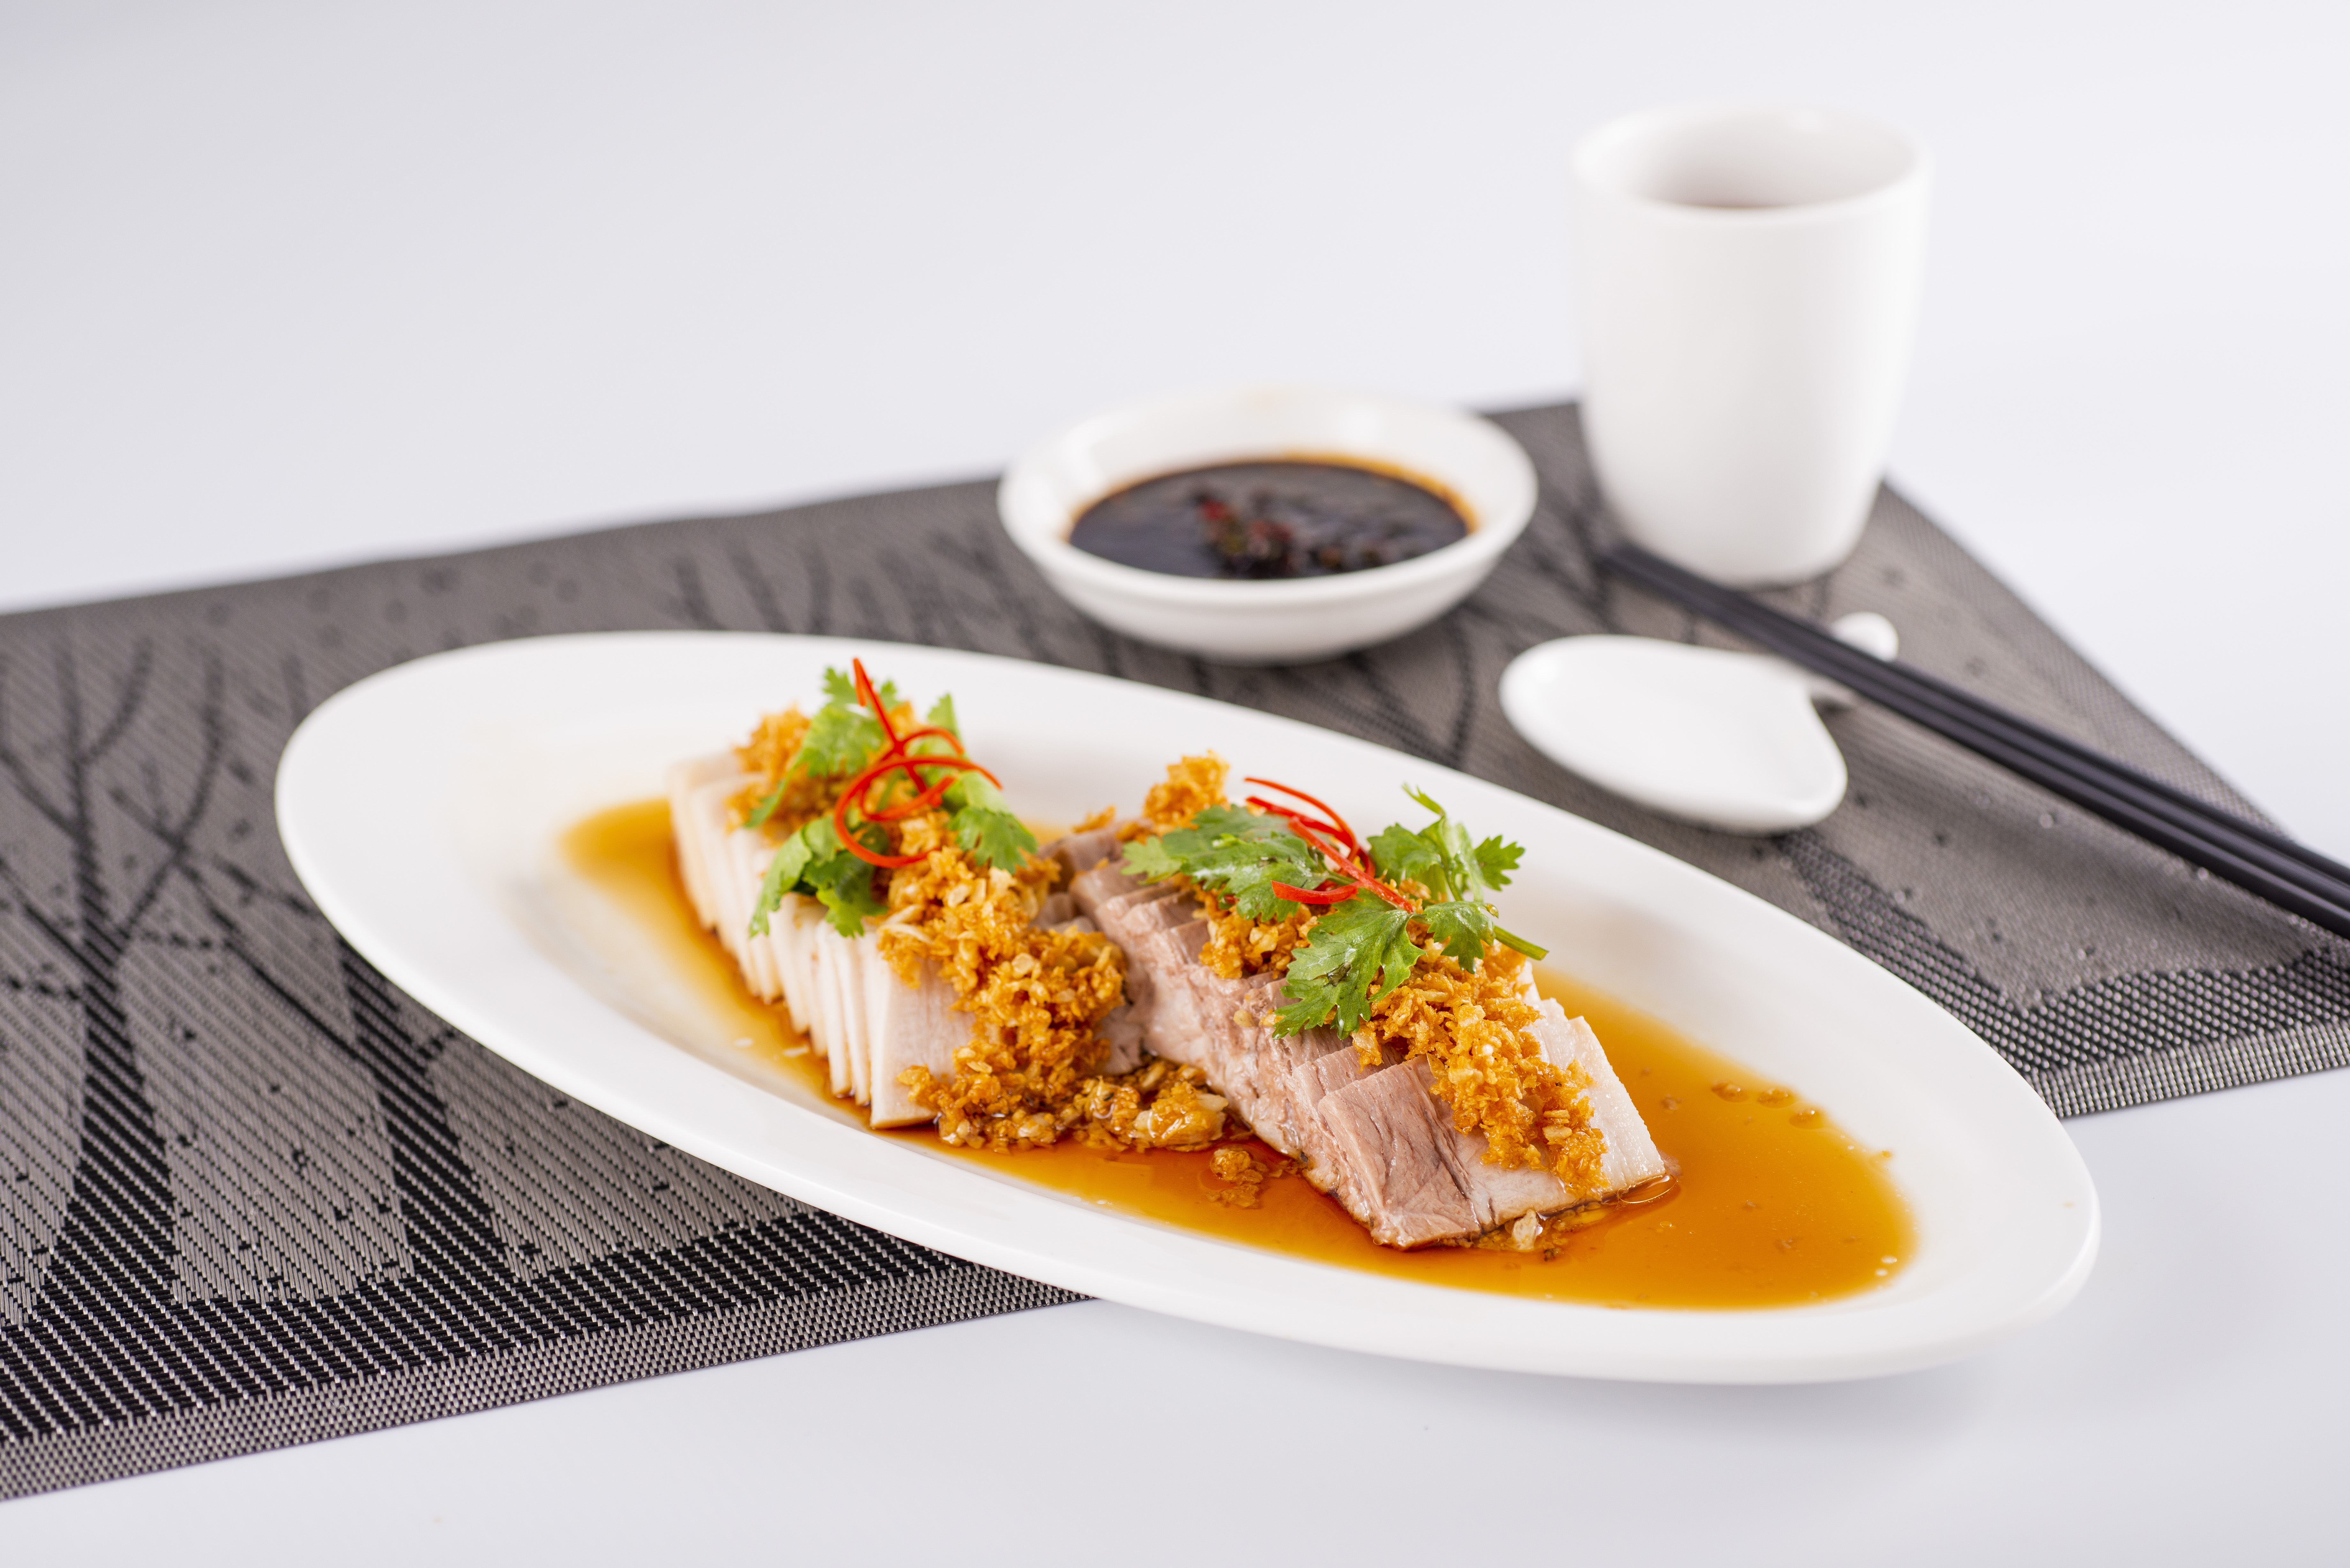 Poached Pork Belly with Minced Garlic 蒜泥白肉